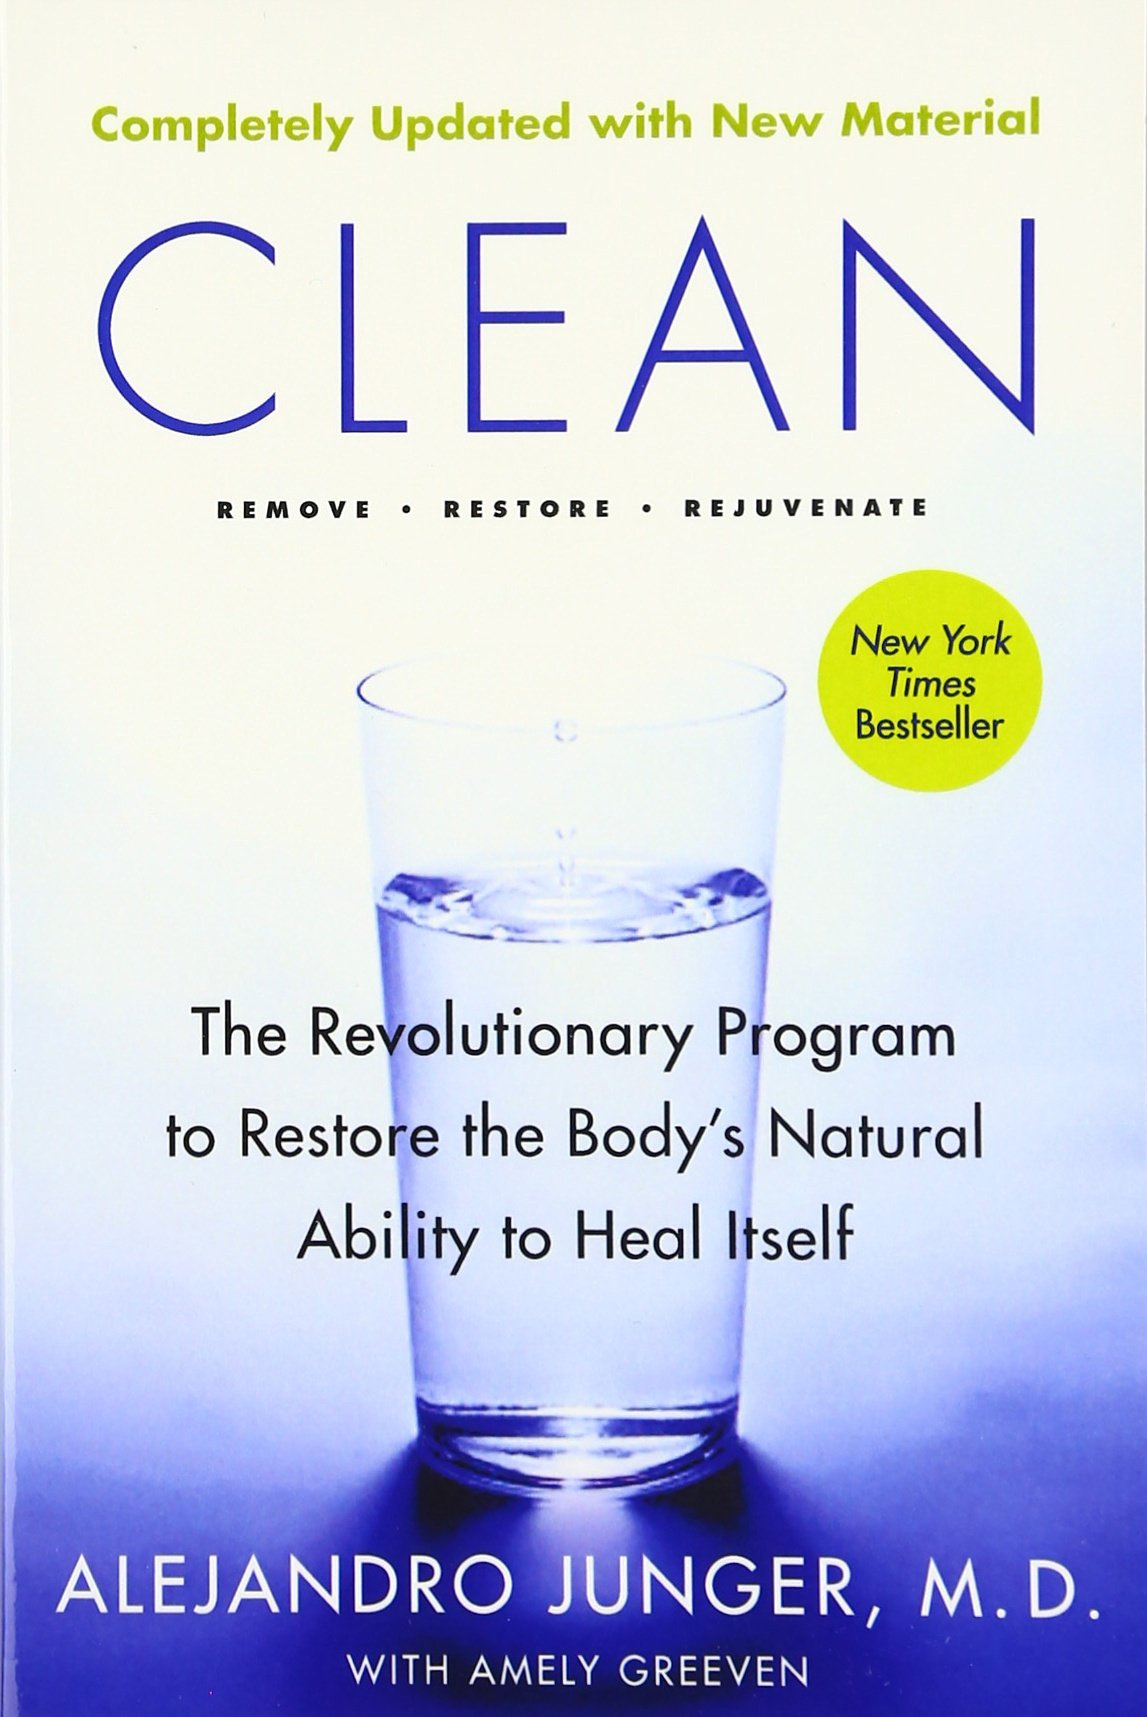 Clean  Expanded Edition: The Revolutionary Program To Restore The Body's  Natural Ability To Heal Itself: Alejandro Junger, Amely Greven:  8601404221033: